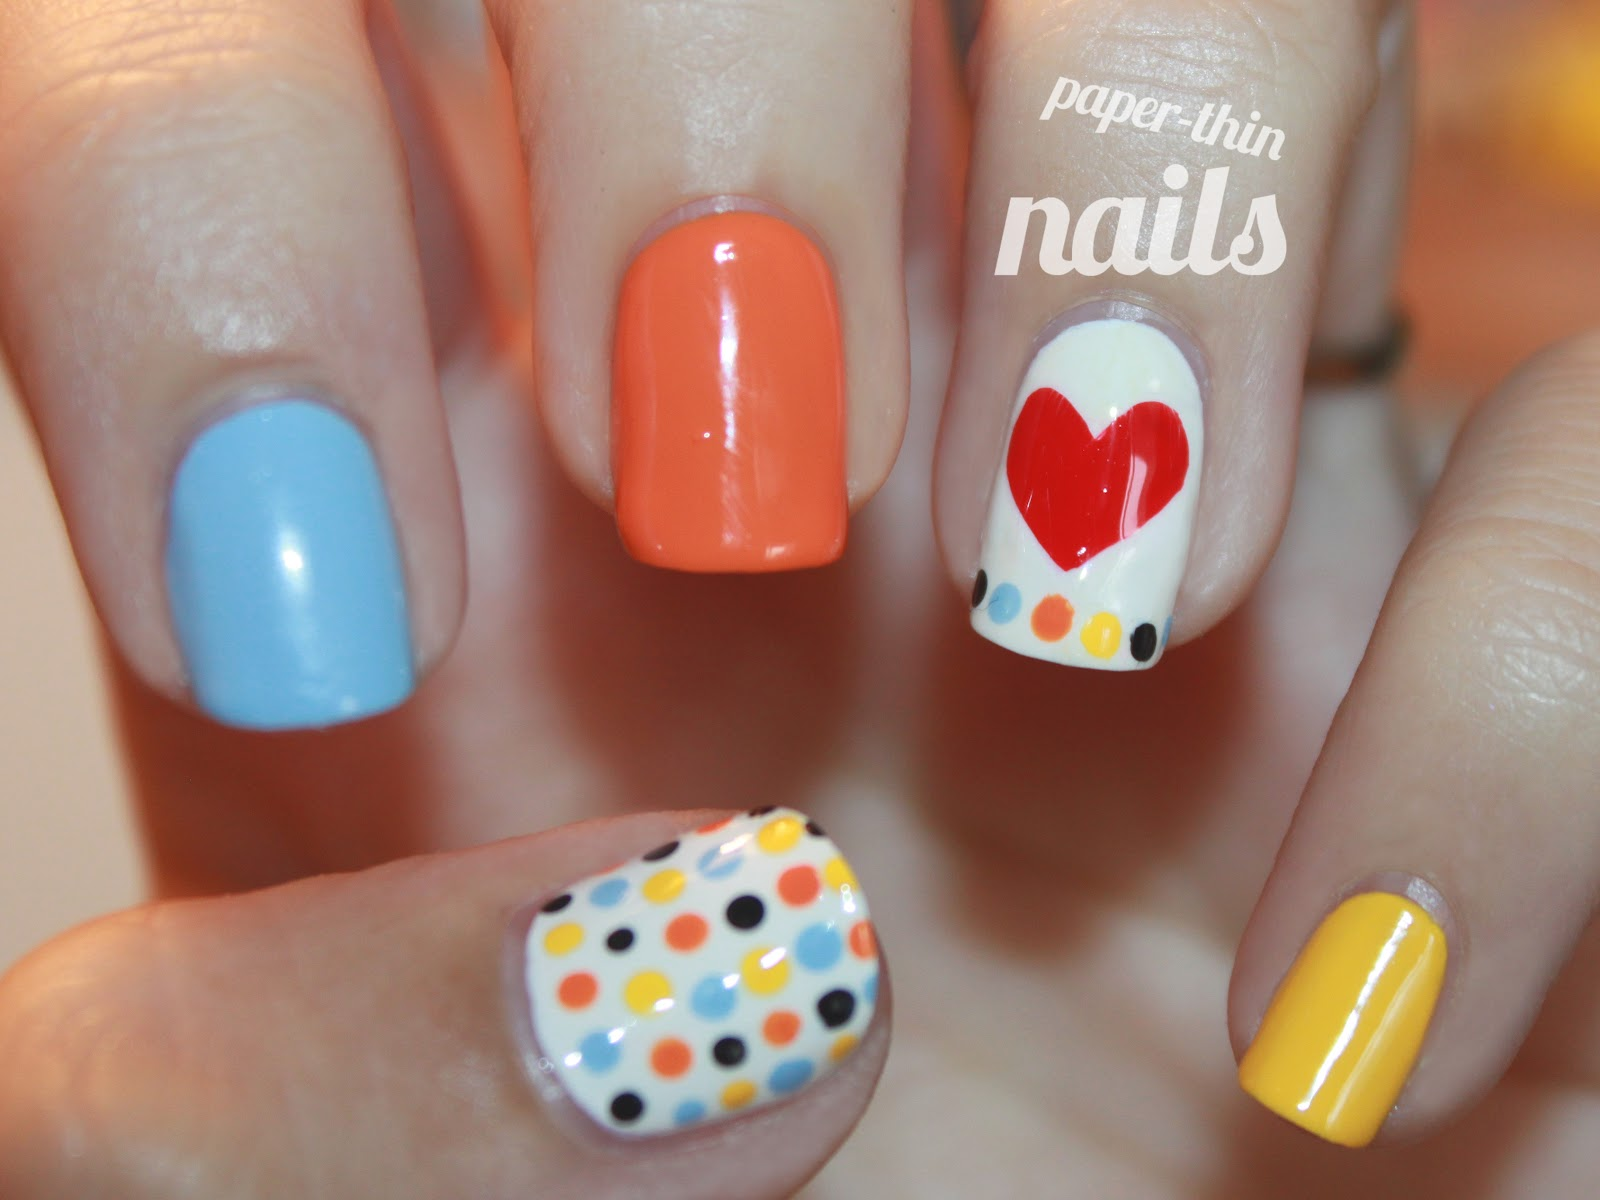 help paper thin nails The best enhancement for thin nails that split  negative comments about my nails i do believe i can have healthy and attractive nails - they just need some help .